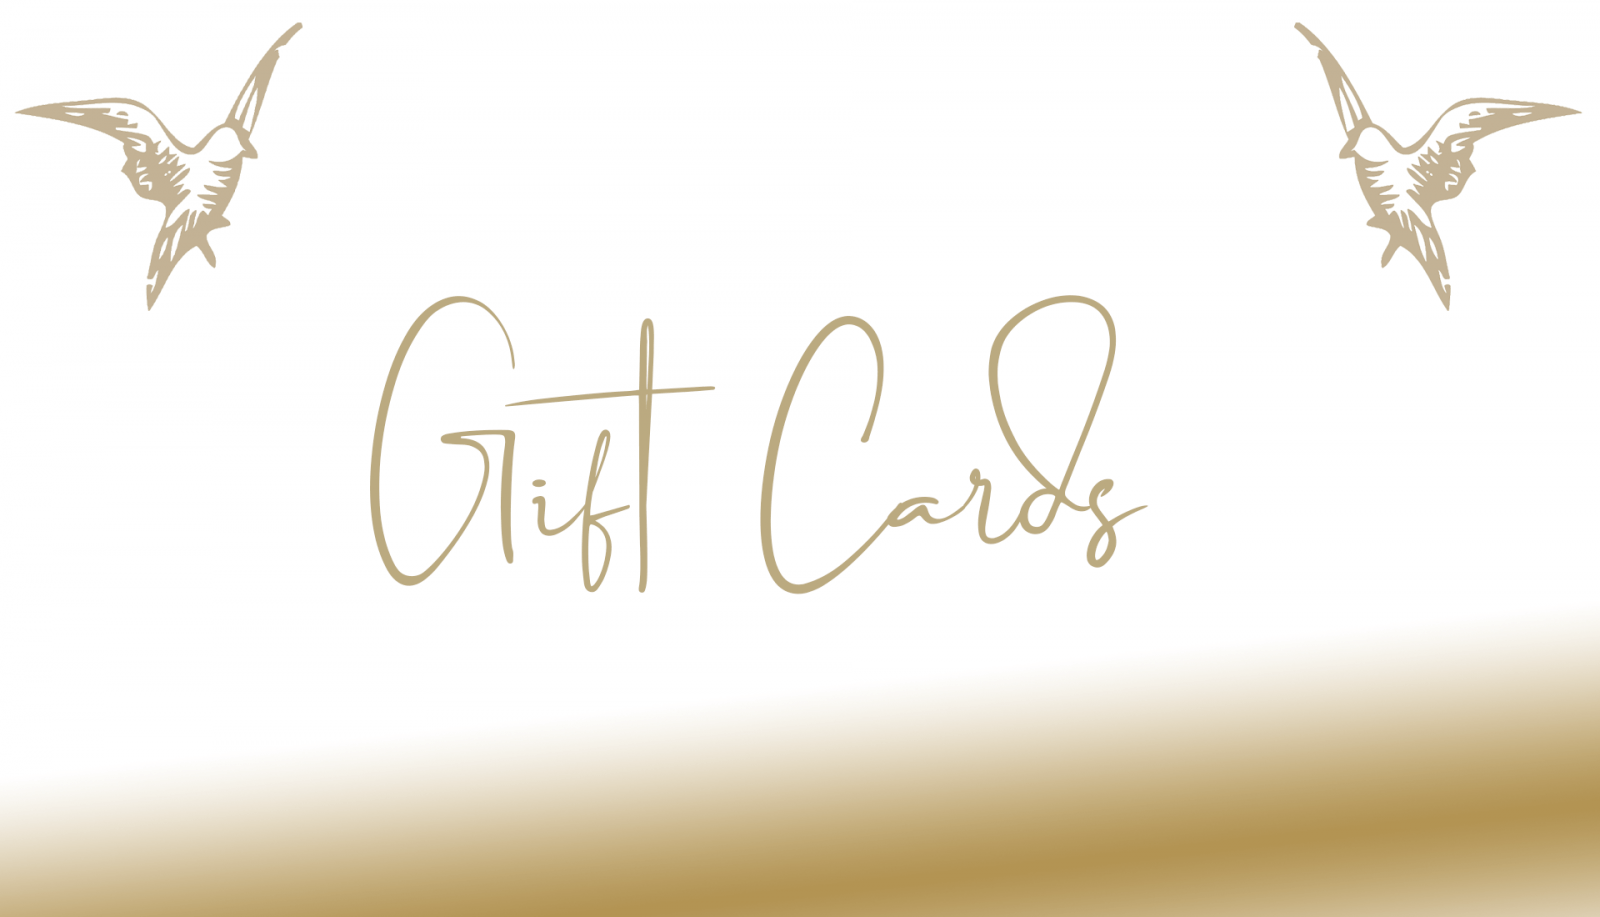 Shop-Gift-cards-and-gift-tags-Cider-Tonic